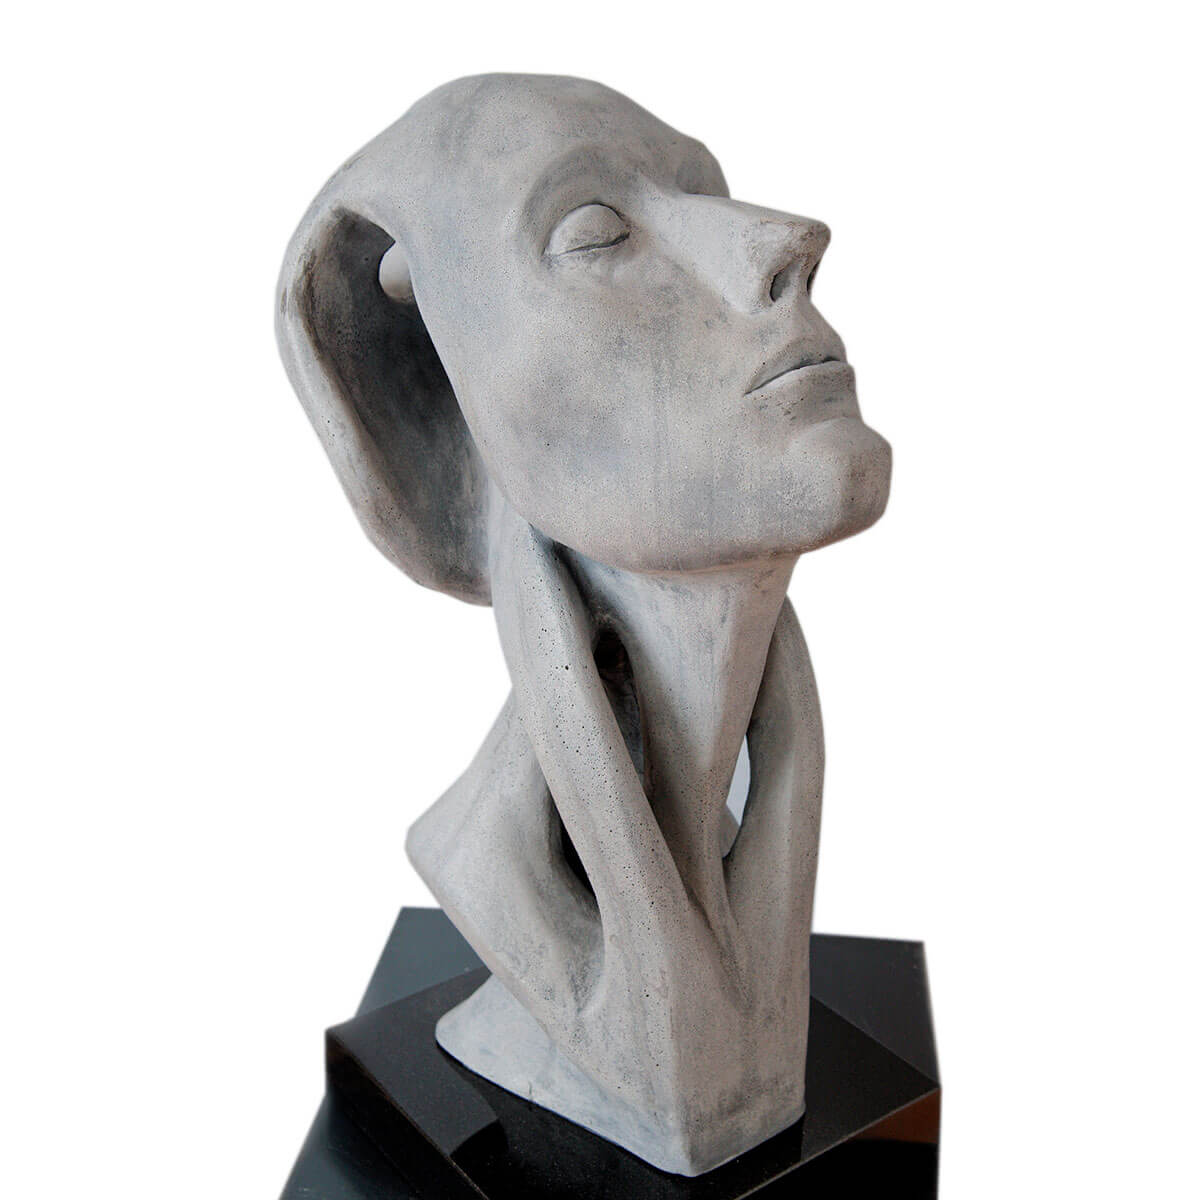 Robert-Helle-Sculpture-Gallery-Contemplation-1-1200x1200